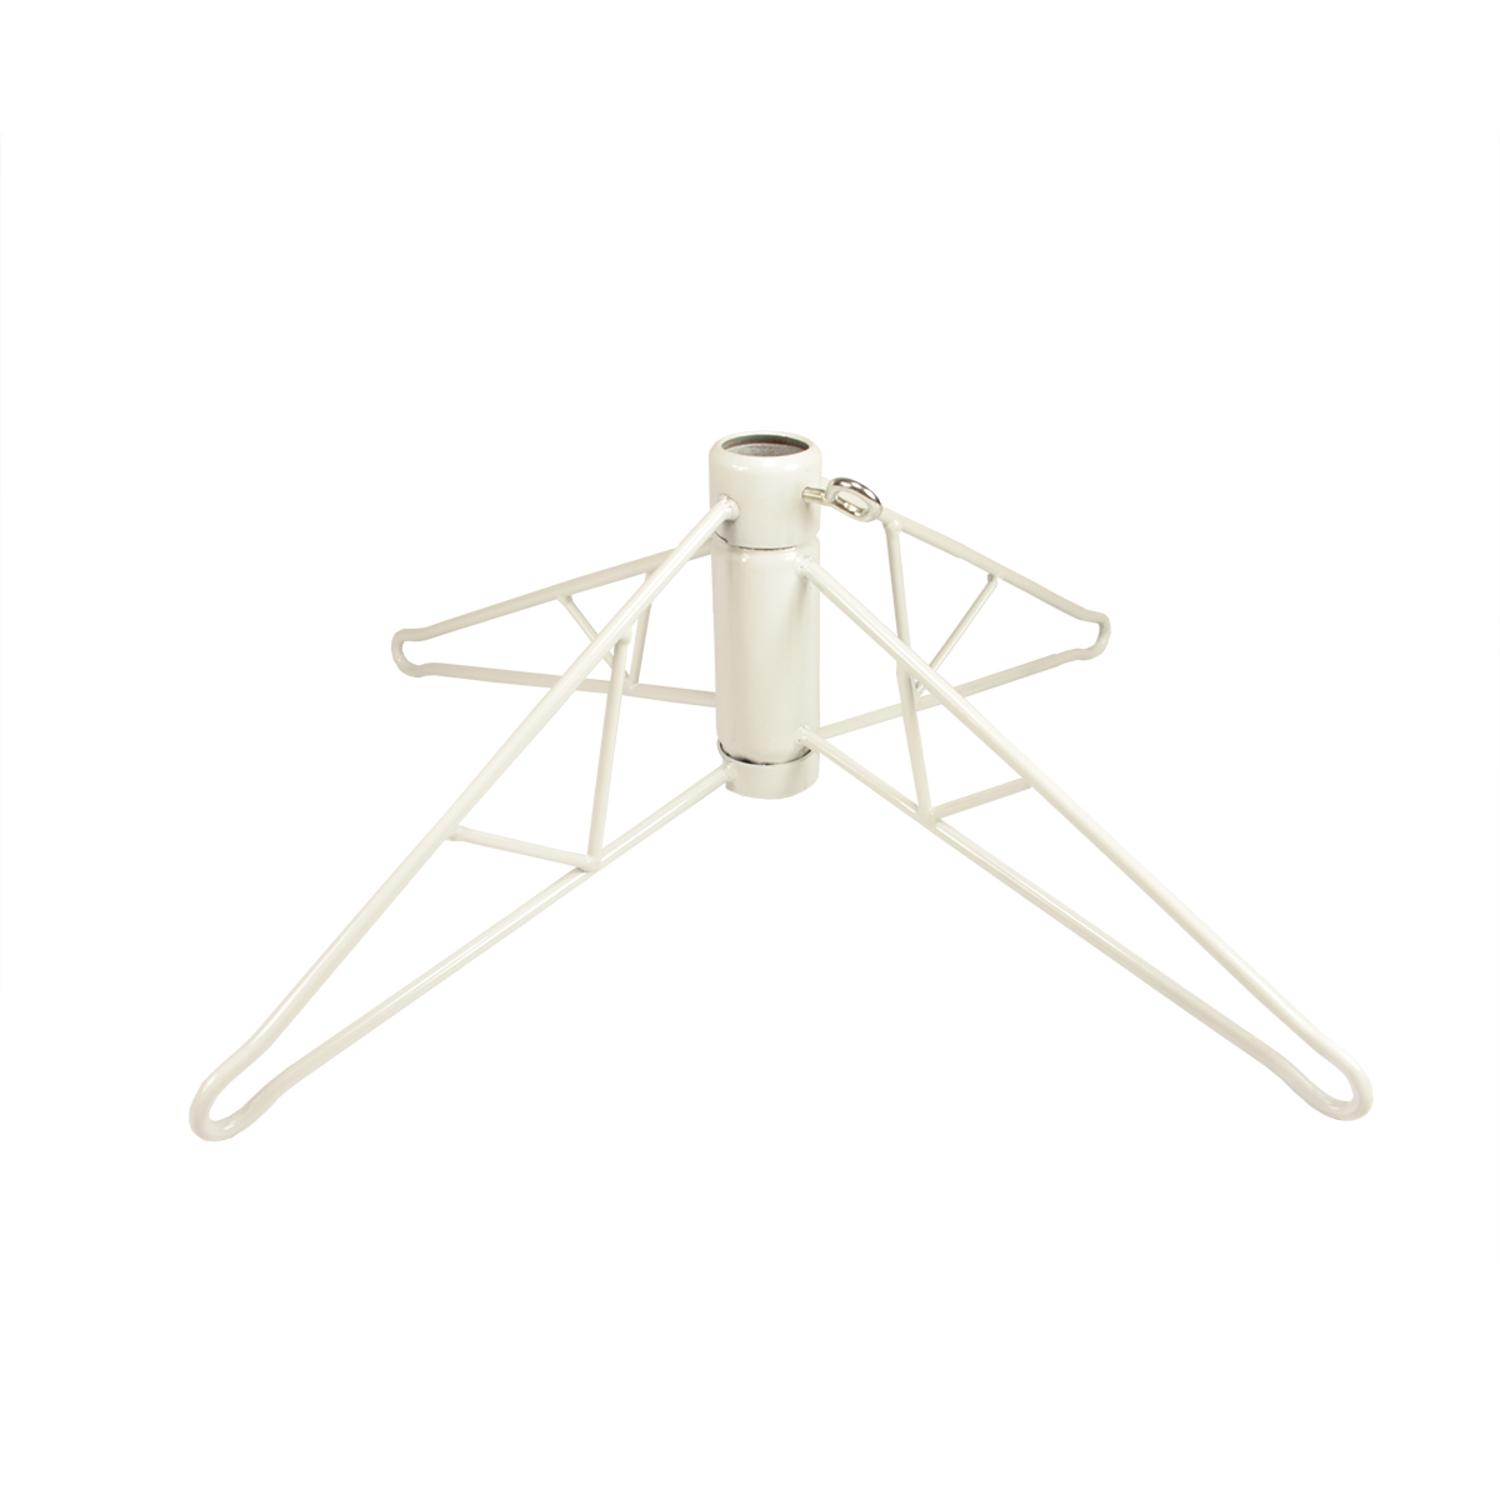 White Metal Christmas Tree Stand For 4' - 4.5' Artificial ...